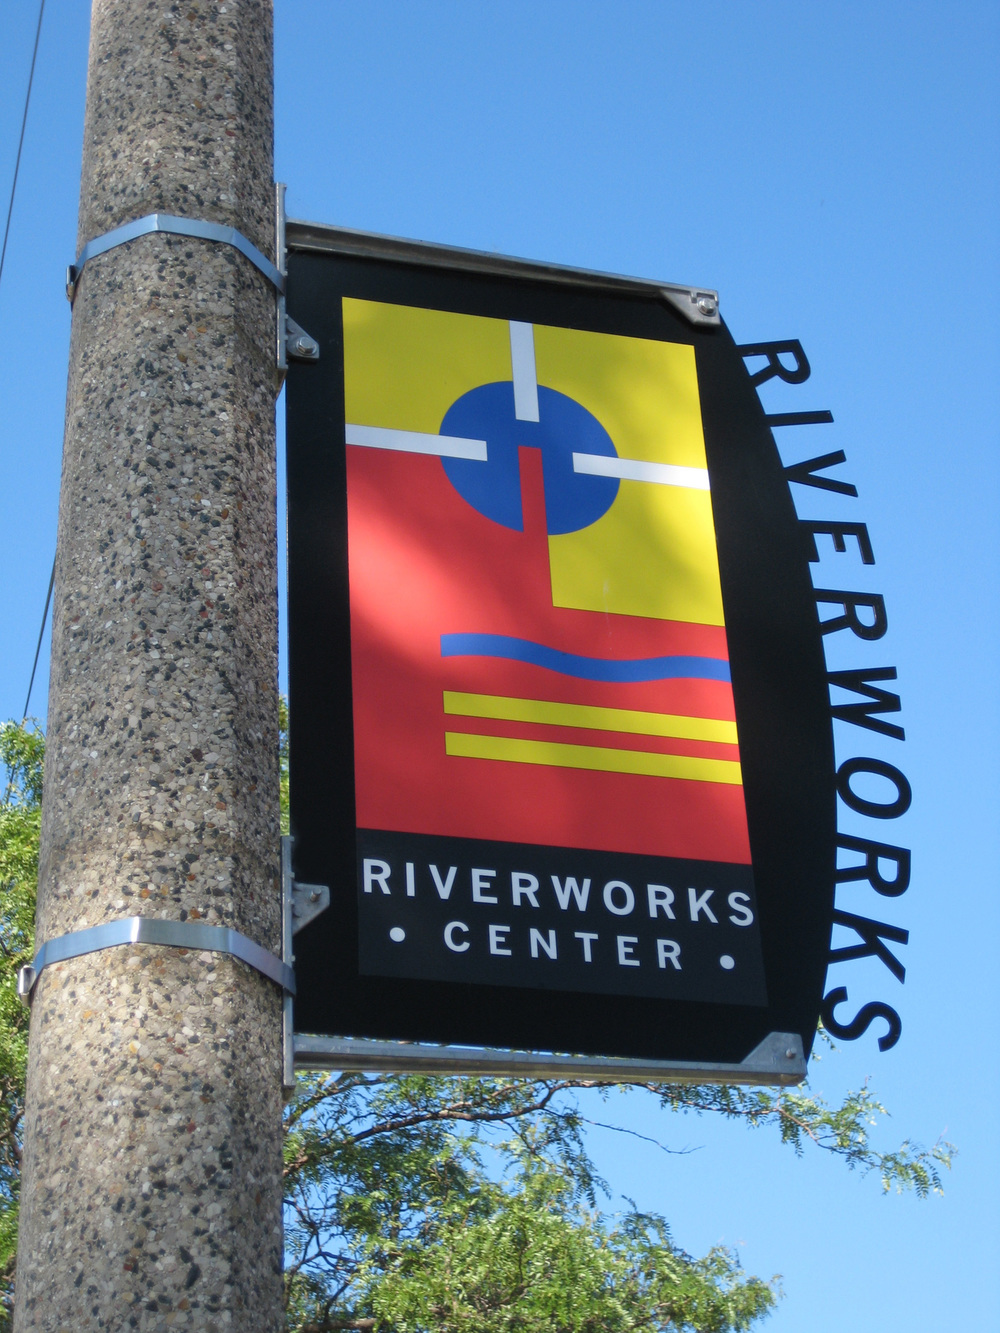 Riverworks Center